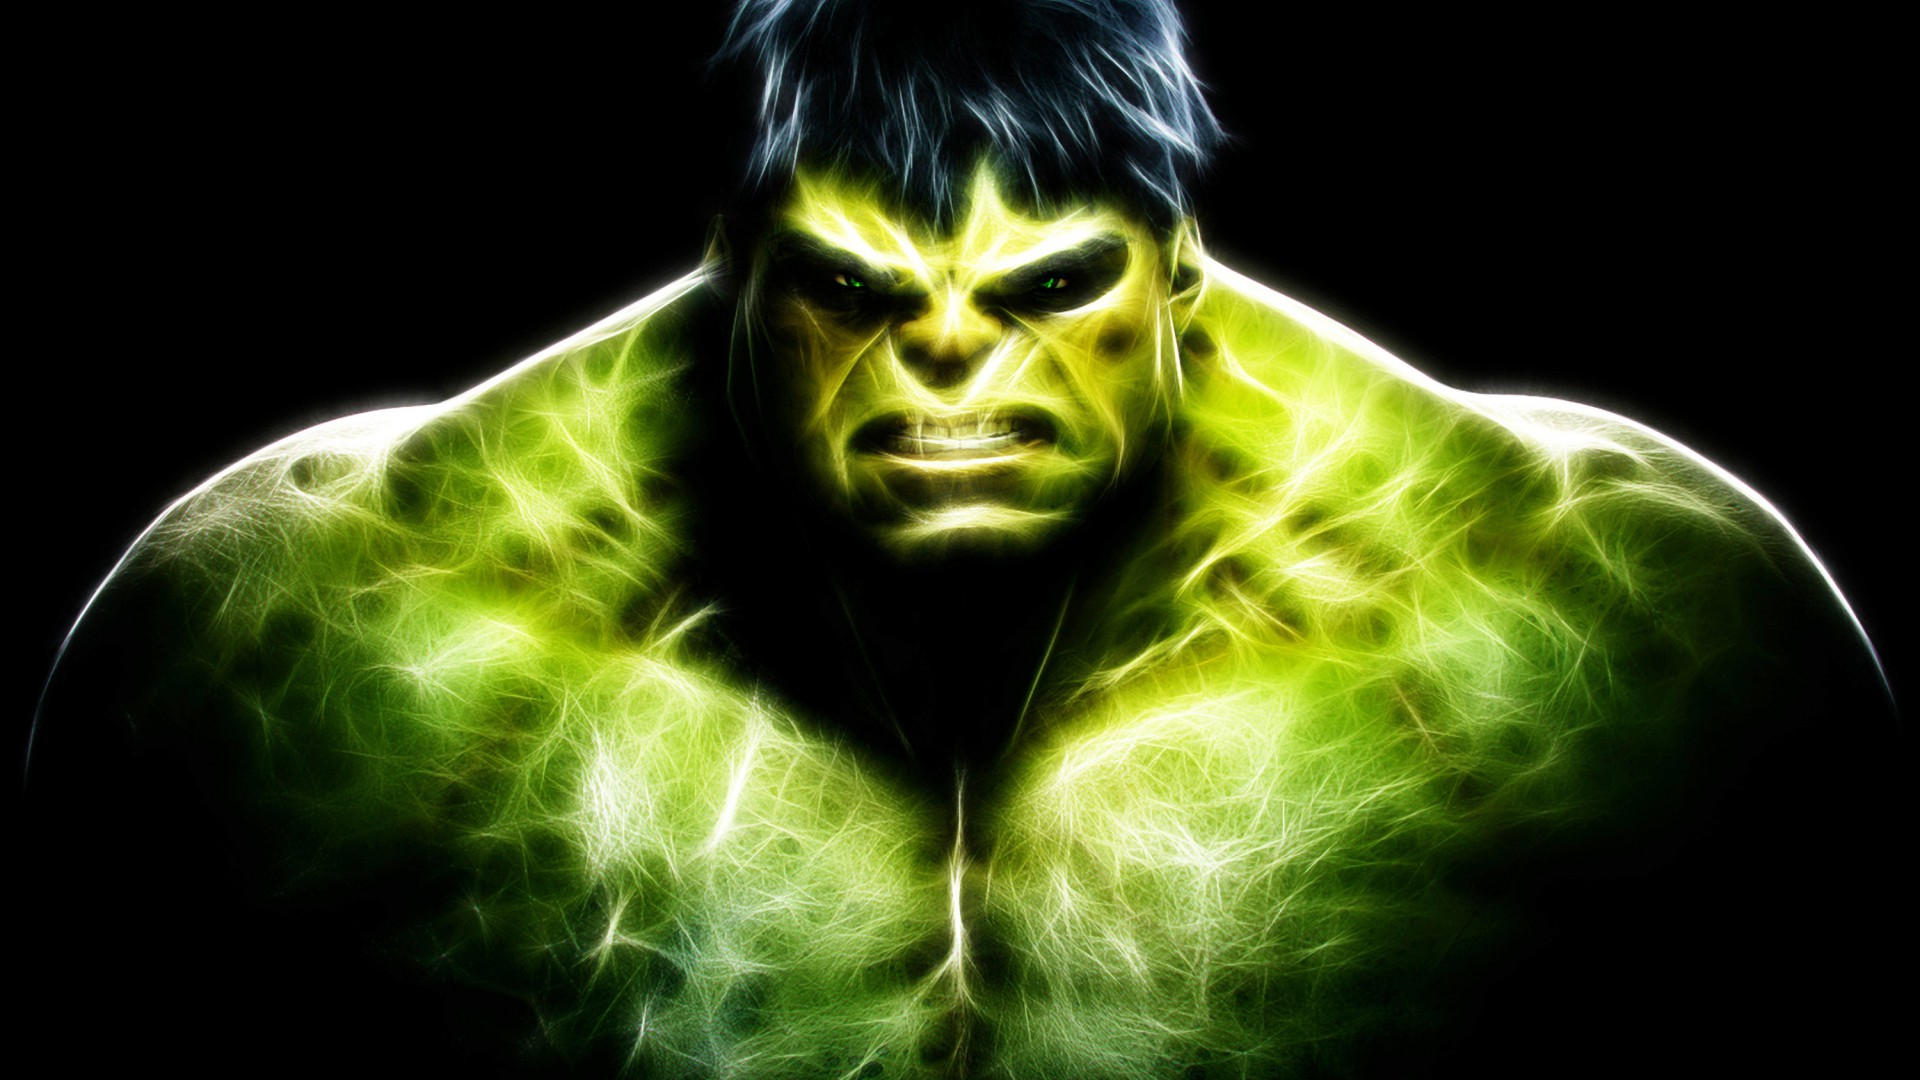 incredible hulk wallpaper for desktop (14)